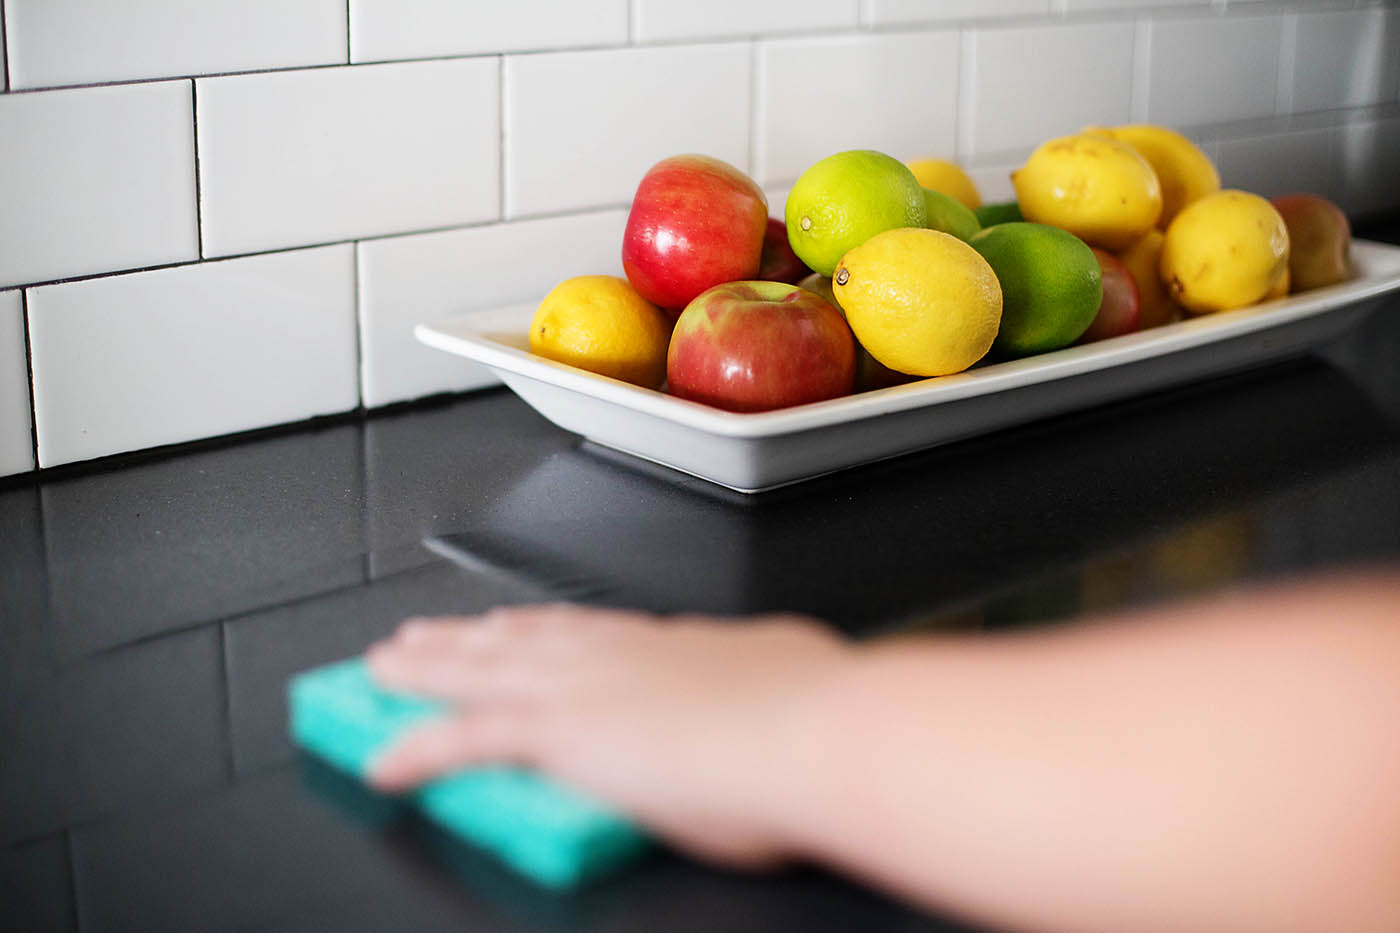 Tips for keeping your house clean with kids #HealthierHousekeeping #PlantBased #NaturalCleaning